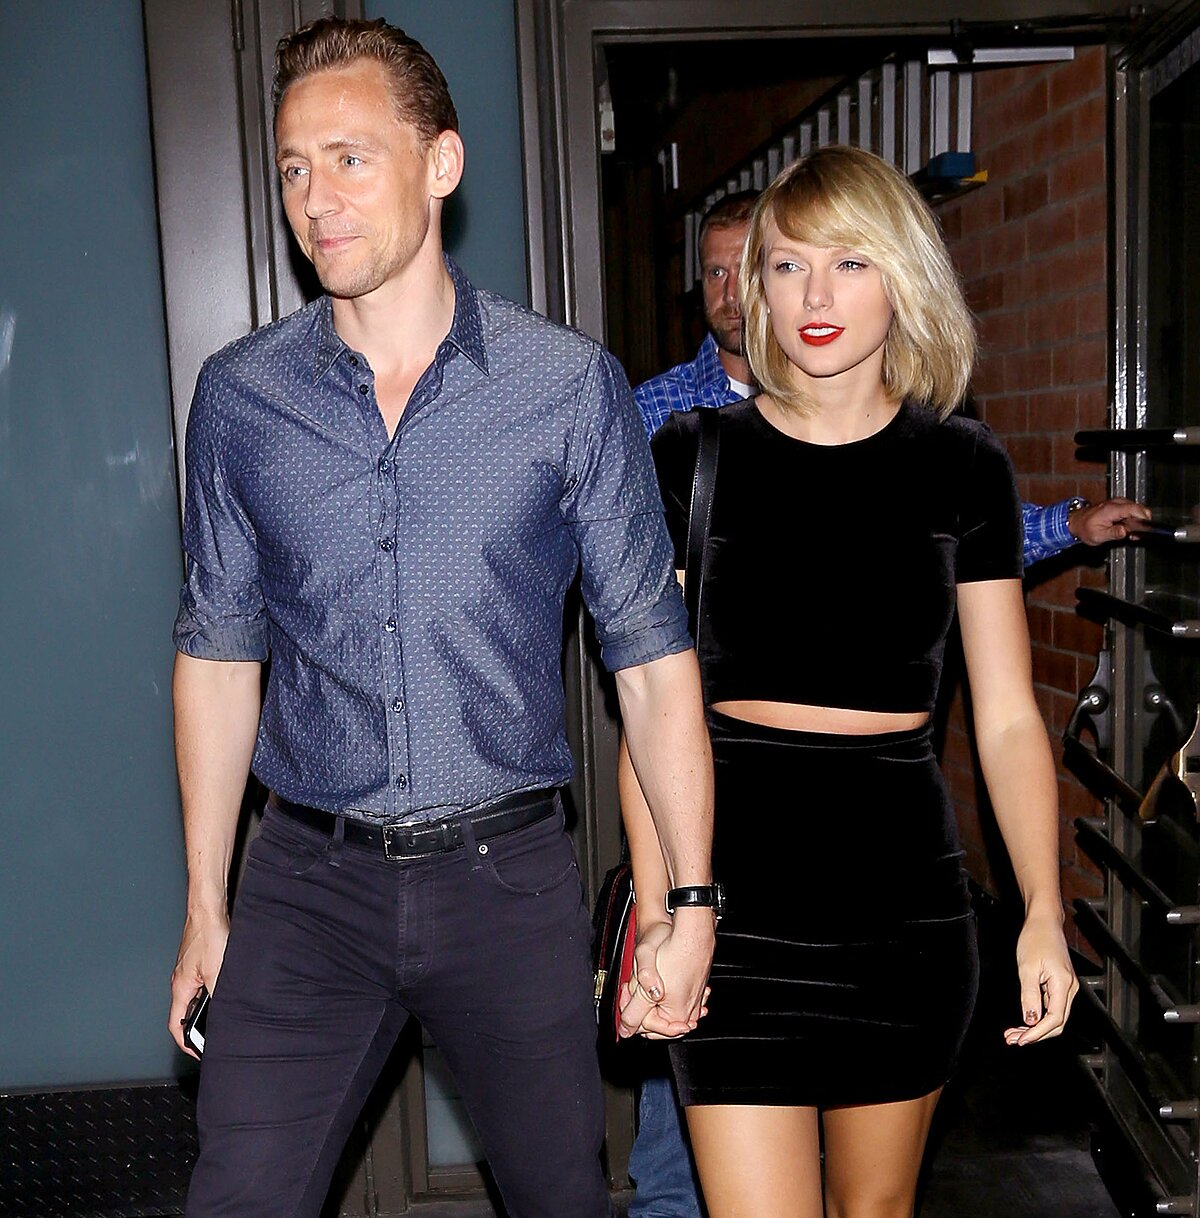 taylor dating